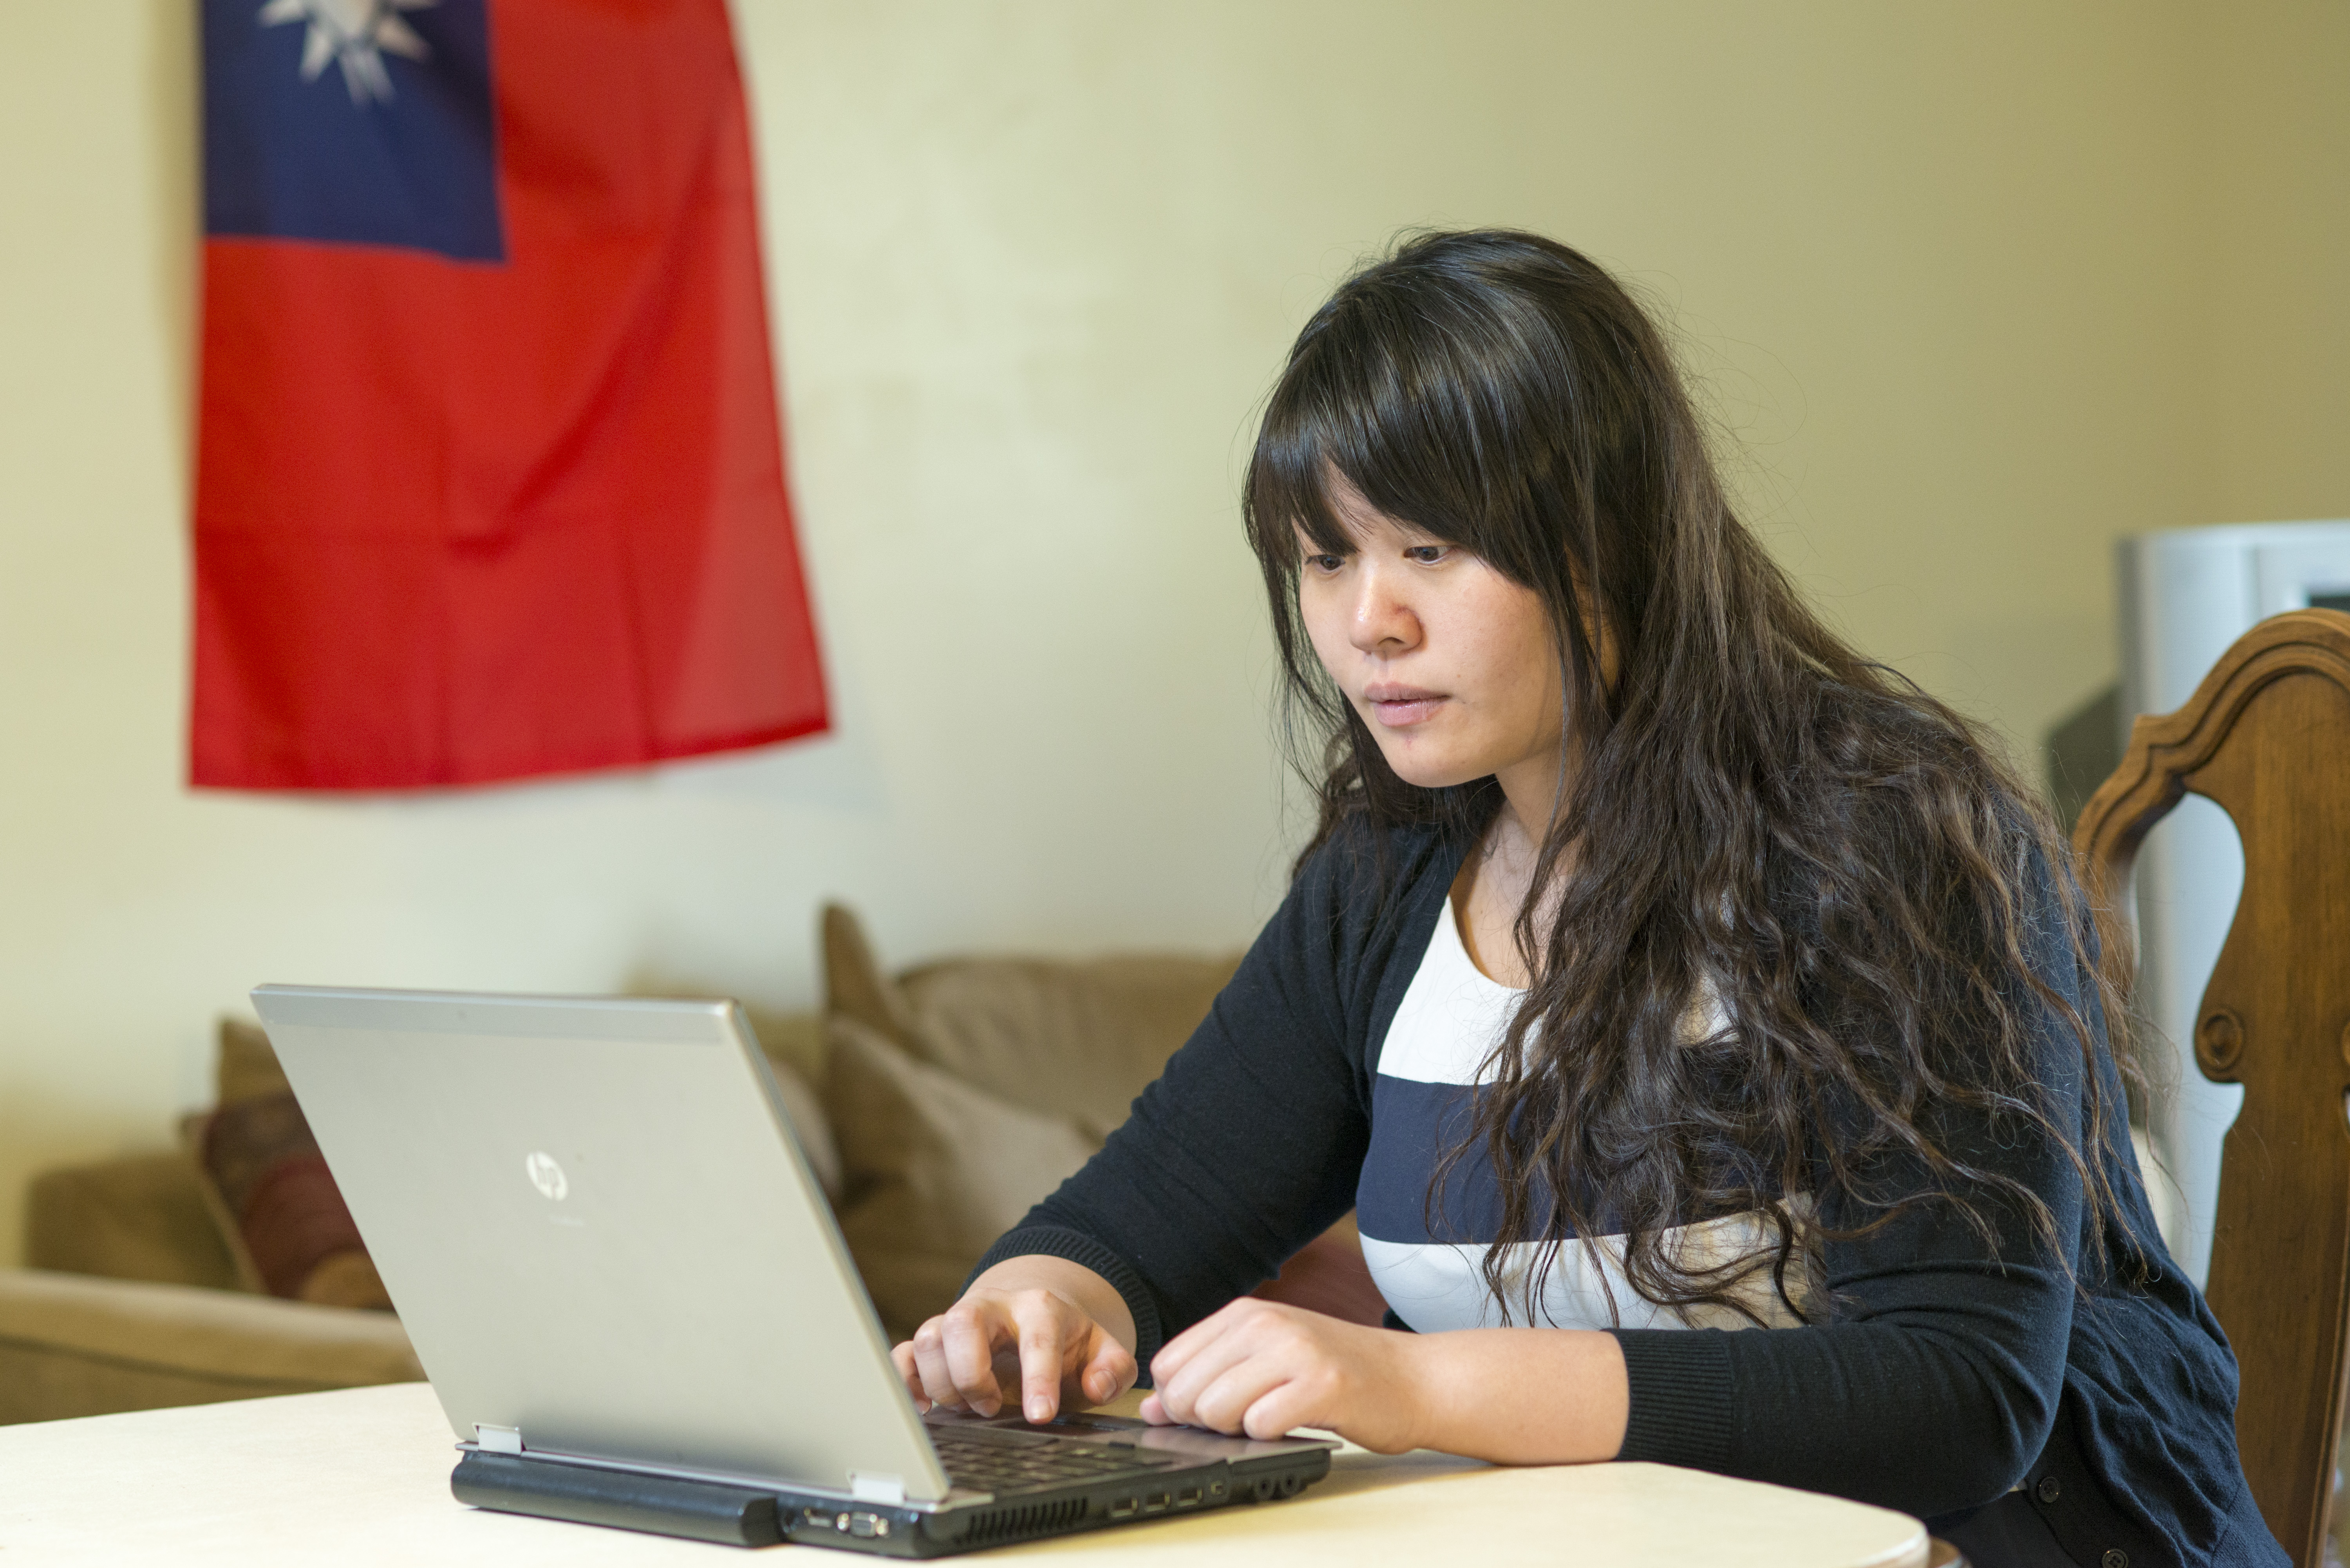 Pathway student, Chia Hsin, studies at her home in April 2017.